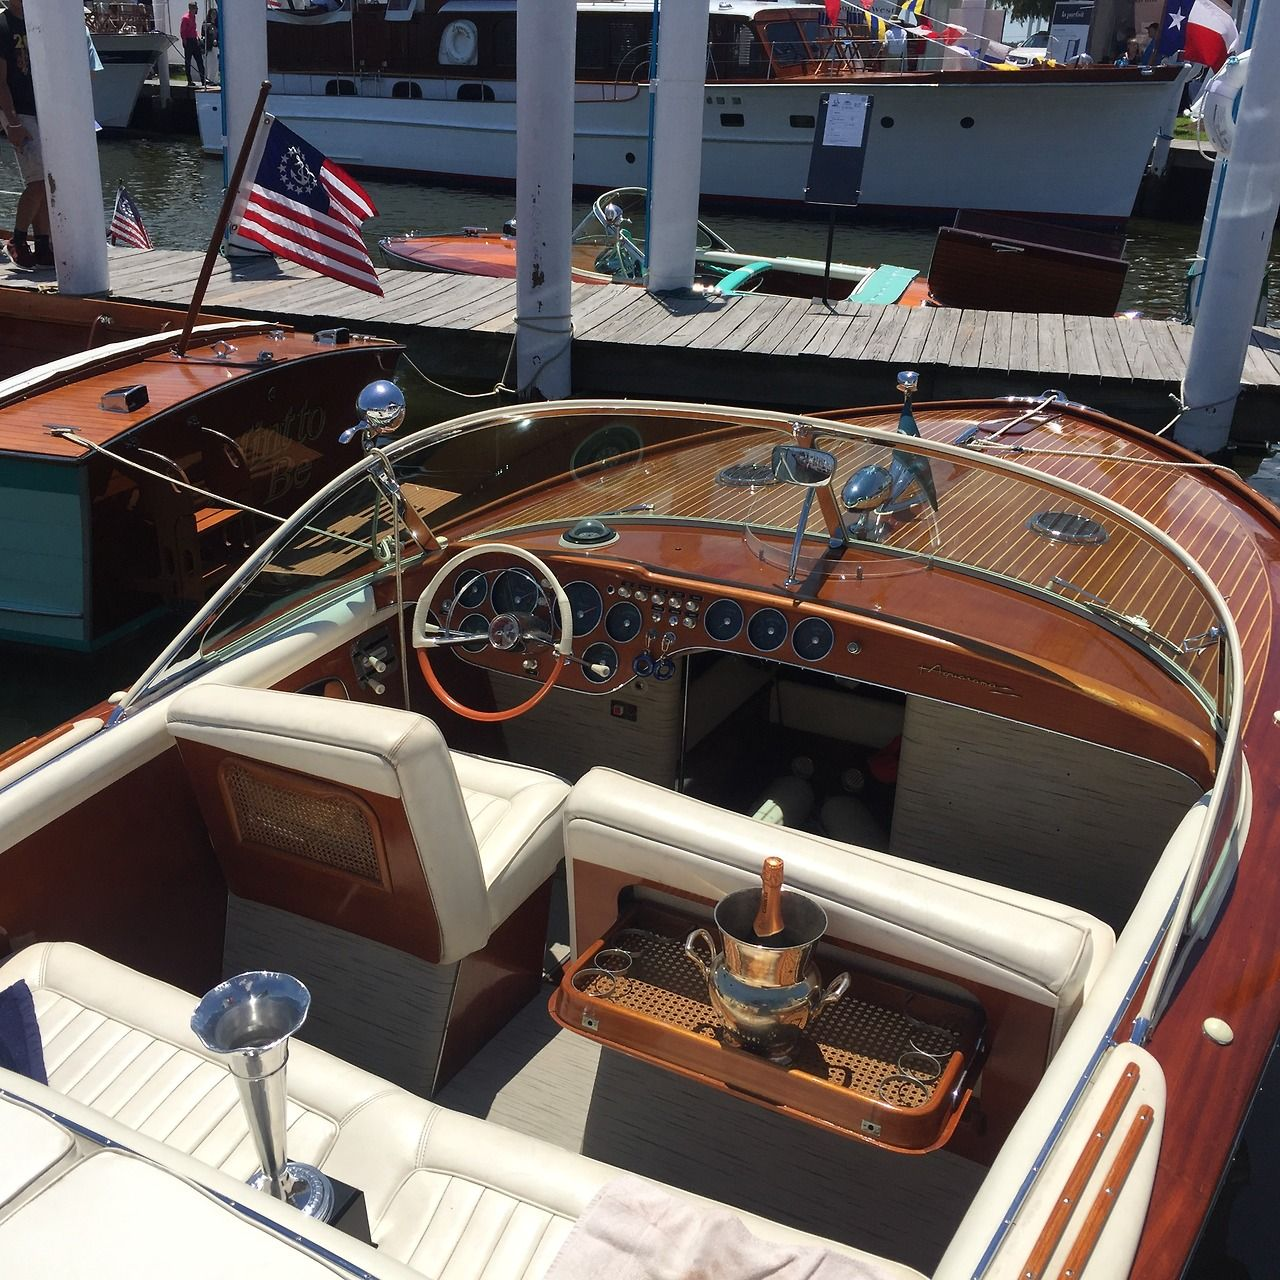 A beautiful wooden boat at Keels and Wheels 2017.